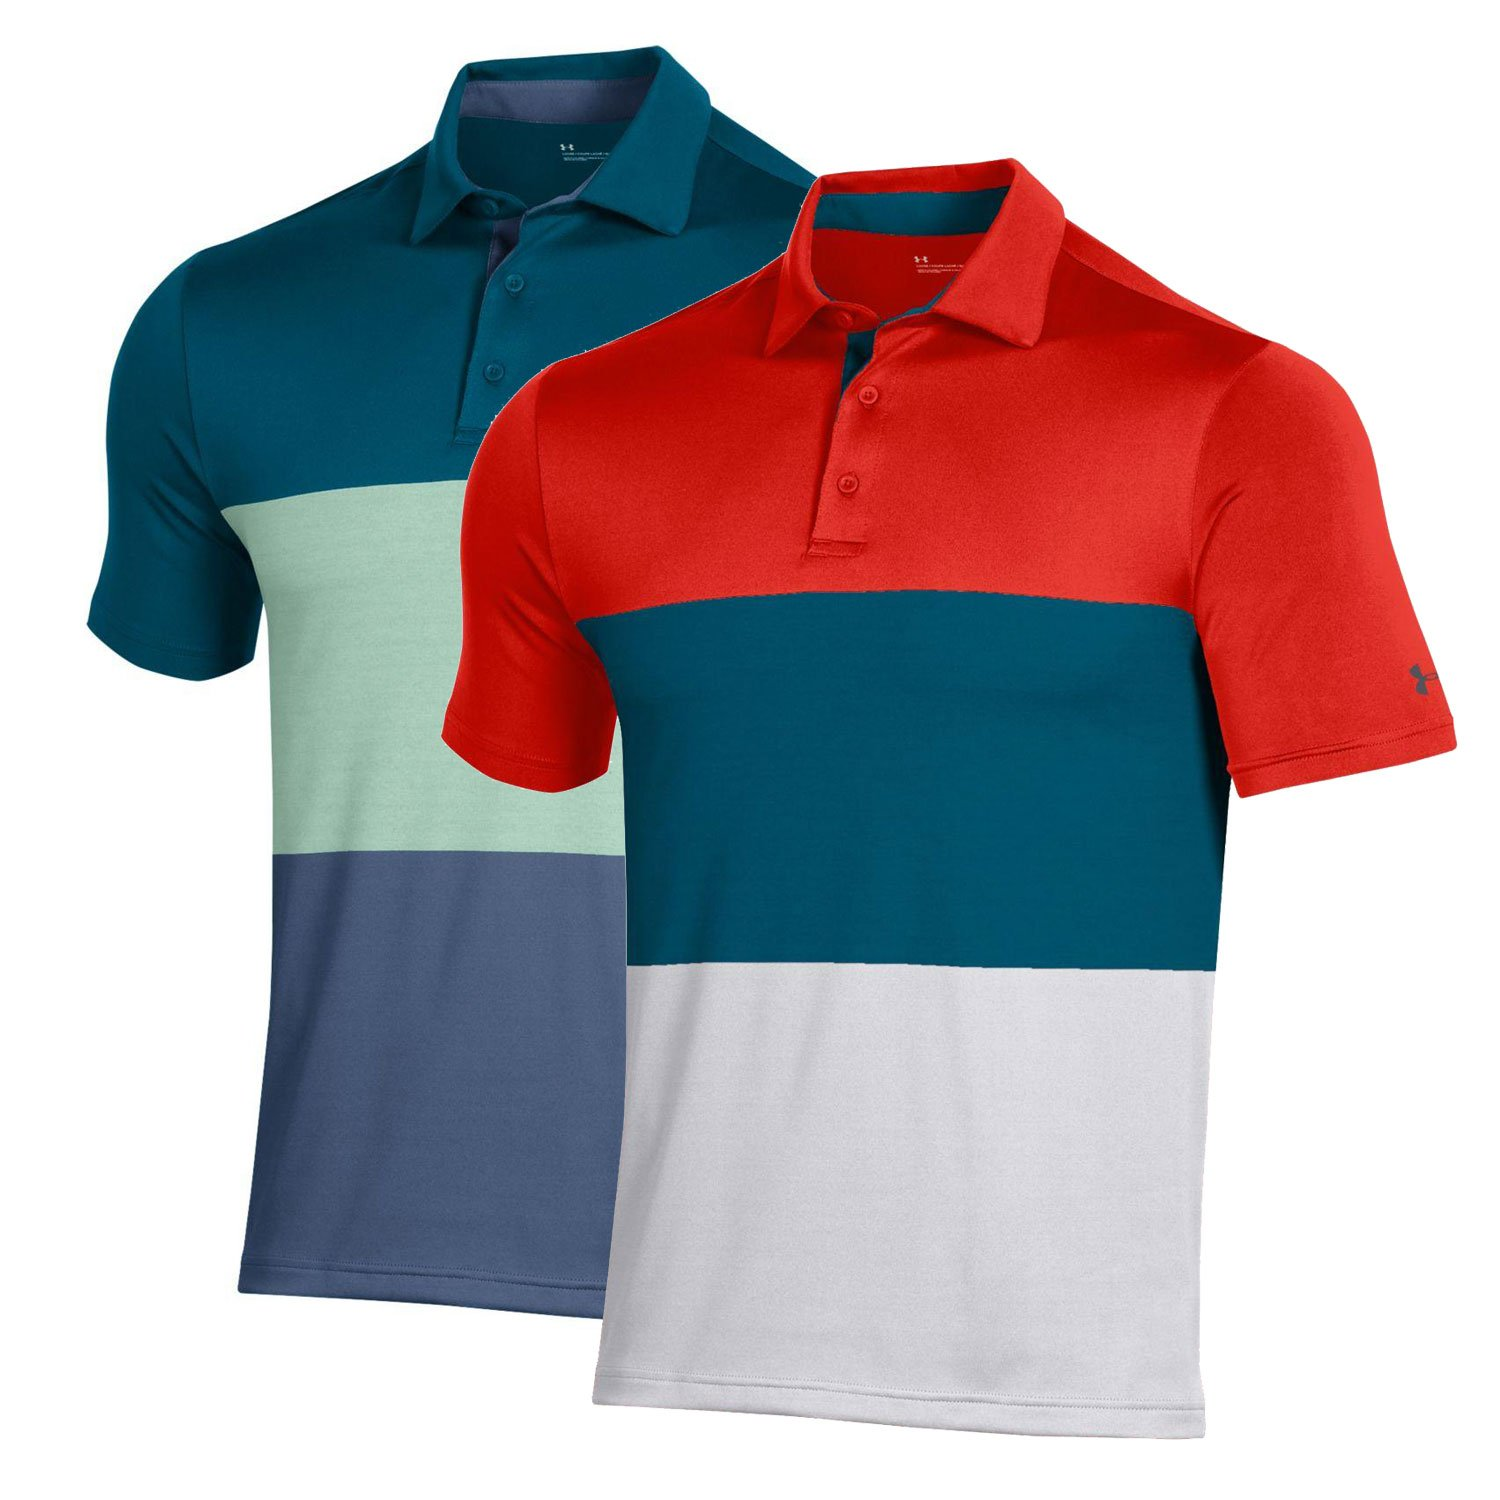 Under Armour Men's Playoff 2.0 Heritage Blocked Polo